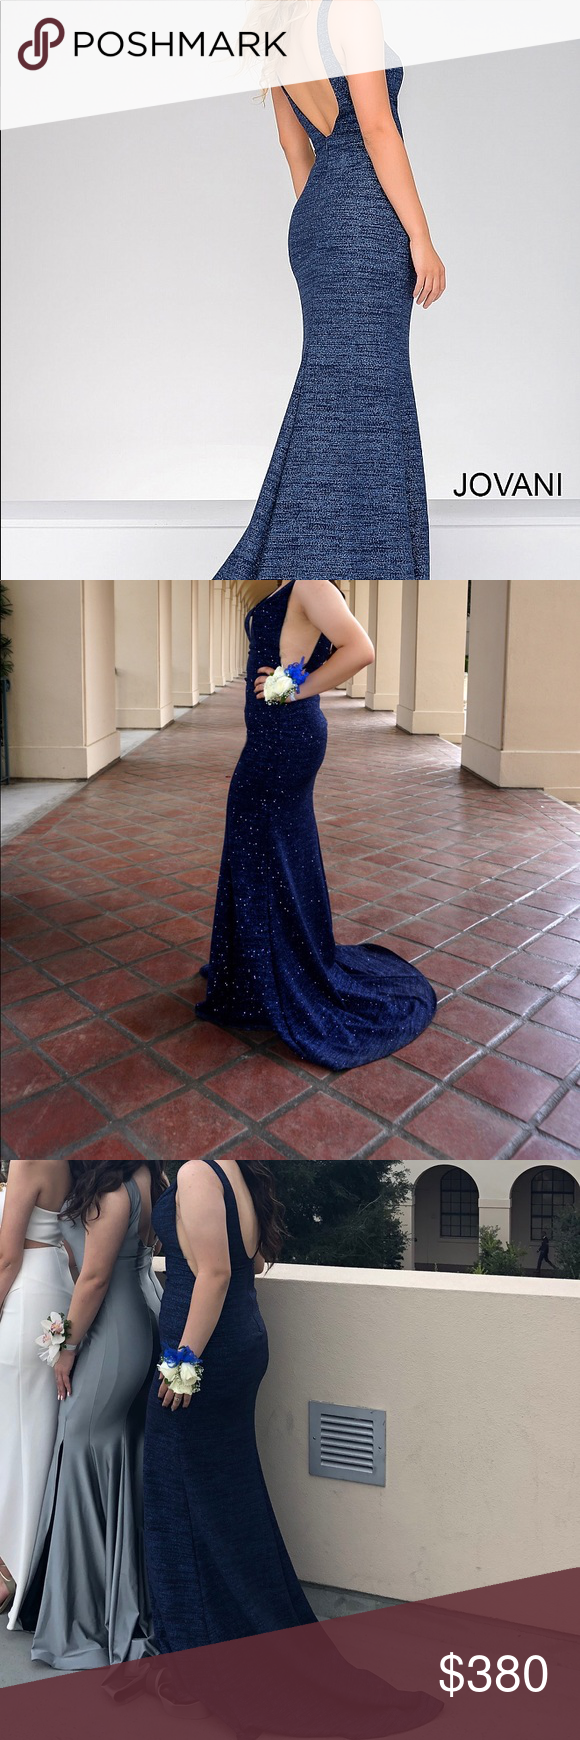 Jovani prom dress size royal blue style in my posh